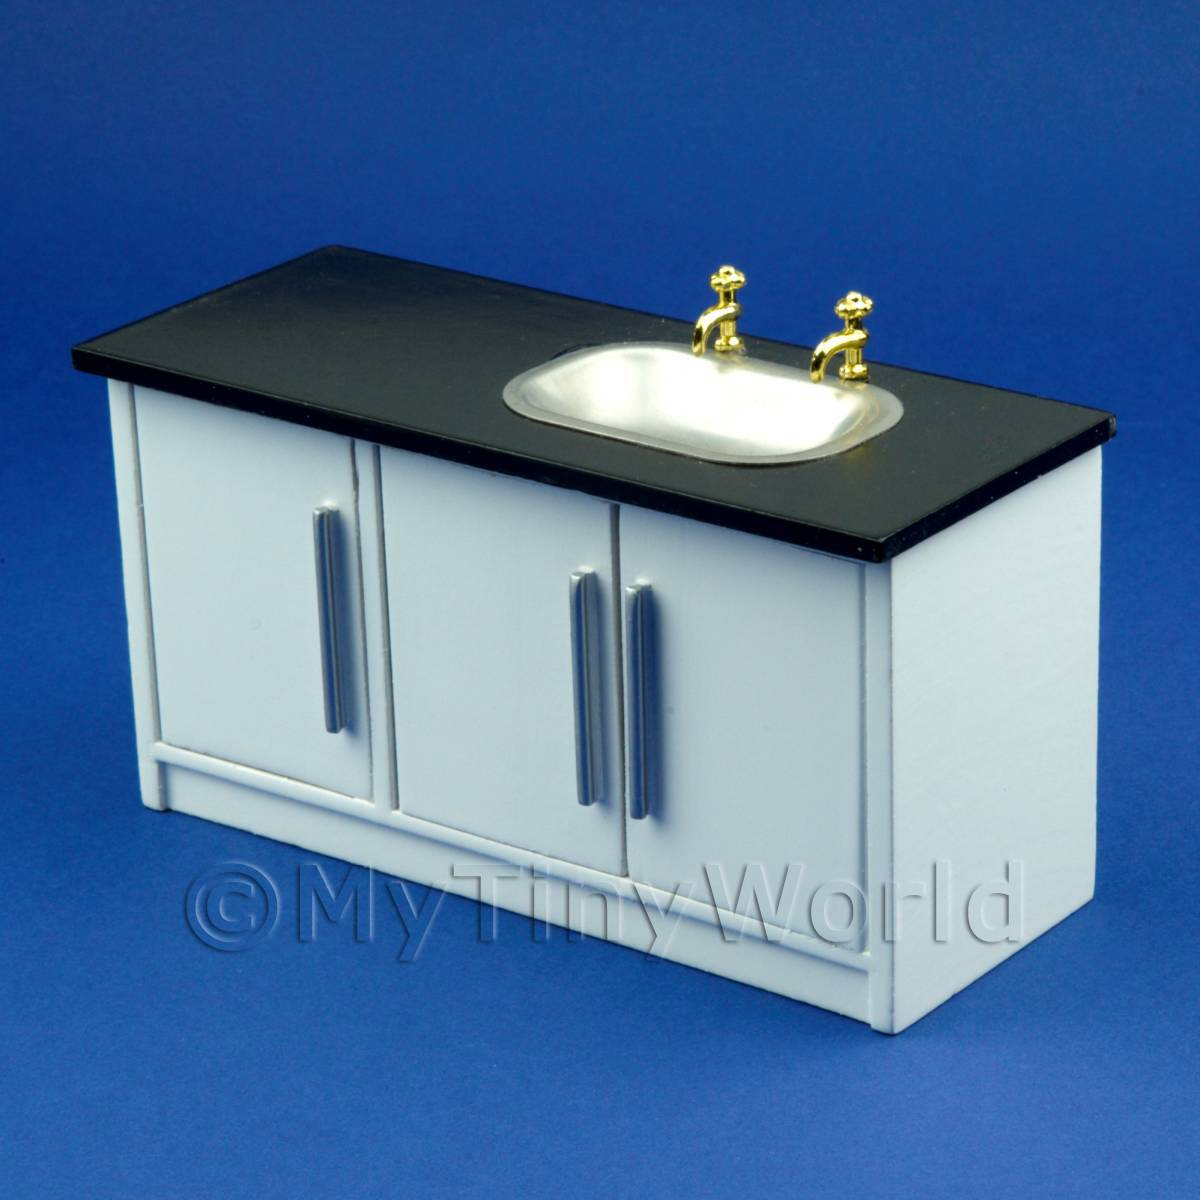 Kitchen Units | Dolls House Miniature | MyTinyWorld